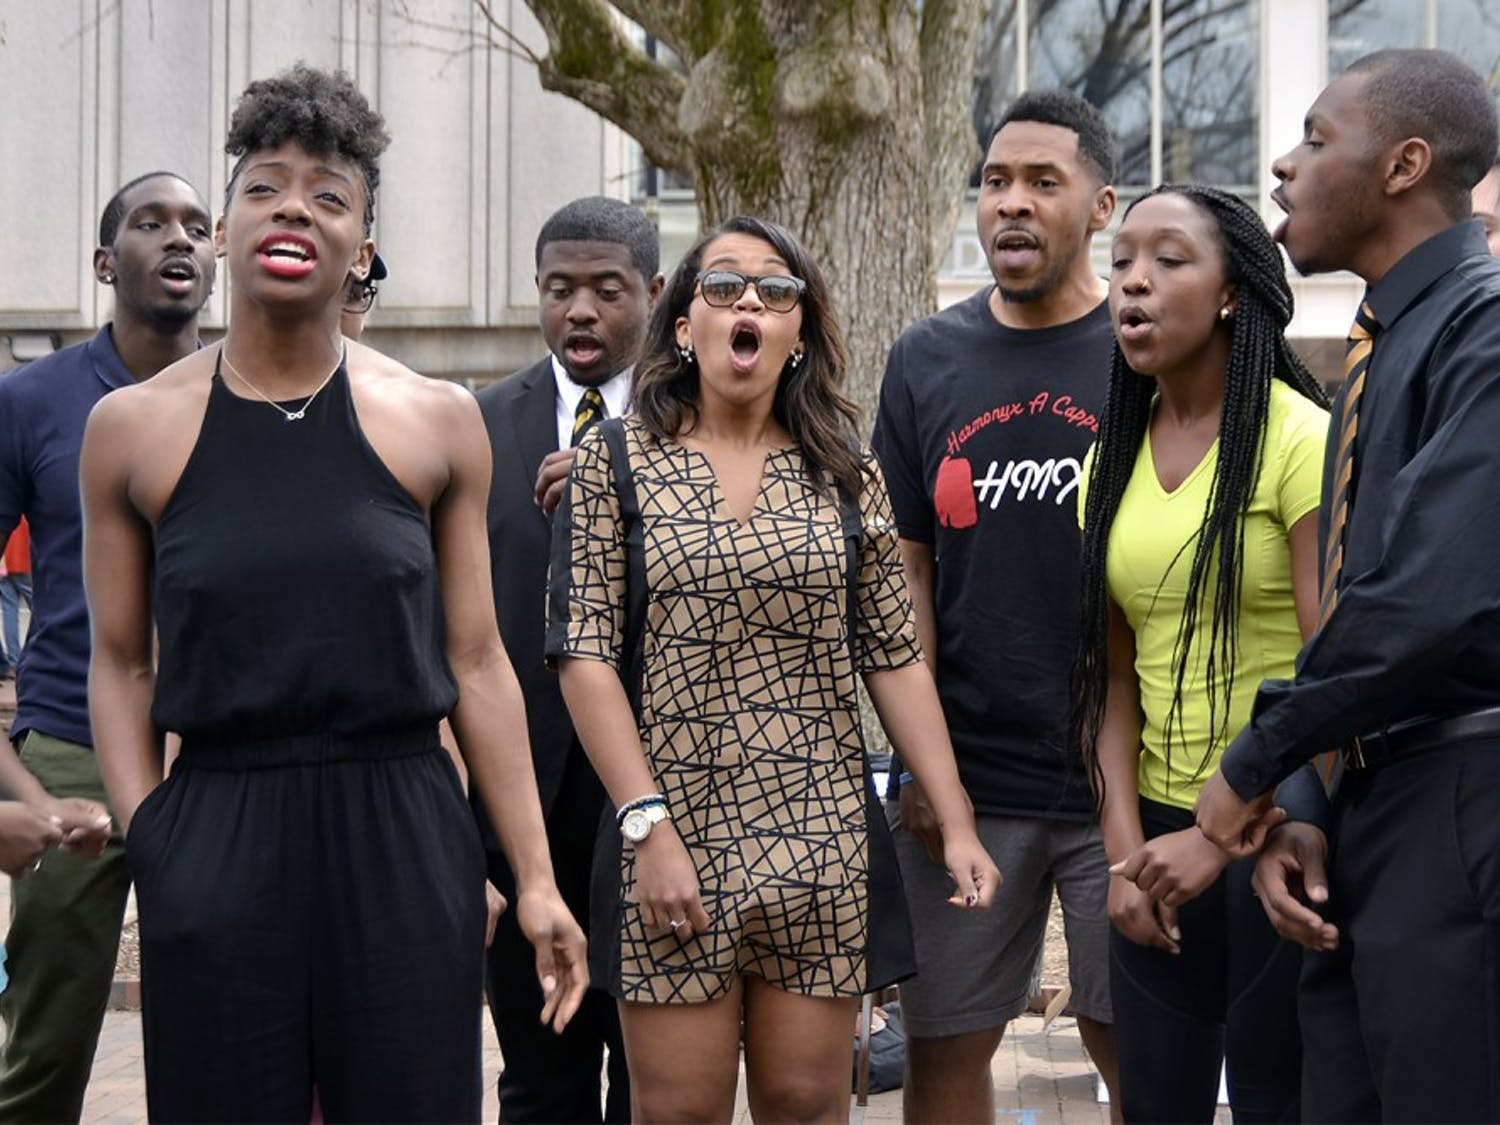 """Harmonyx, an acapella group on campus, is celebrating their 20th anniversary this Friday with a concert. Erika Baker, a senior biology major, sings a new song in the pit on Friday afternoon. She explained that the best part of Harmonyx is """"hanging out with some really great, genuine people."""""""